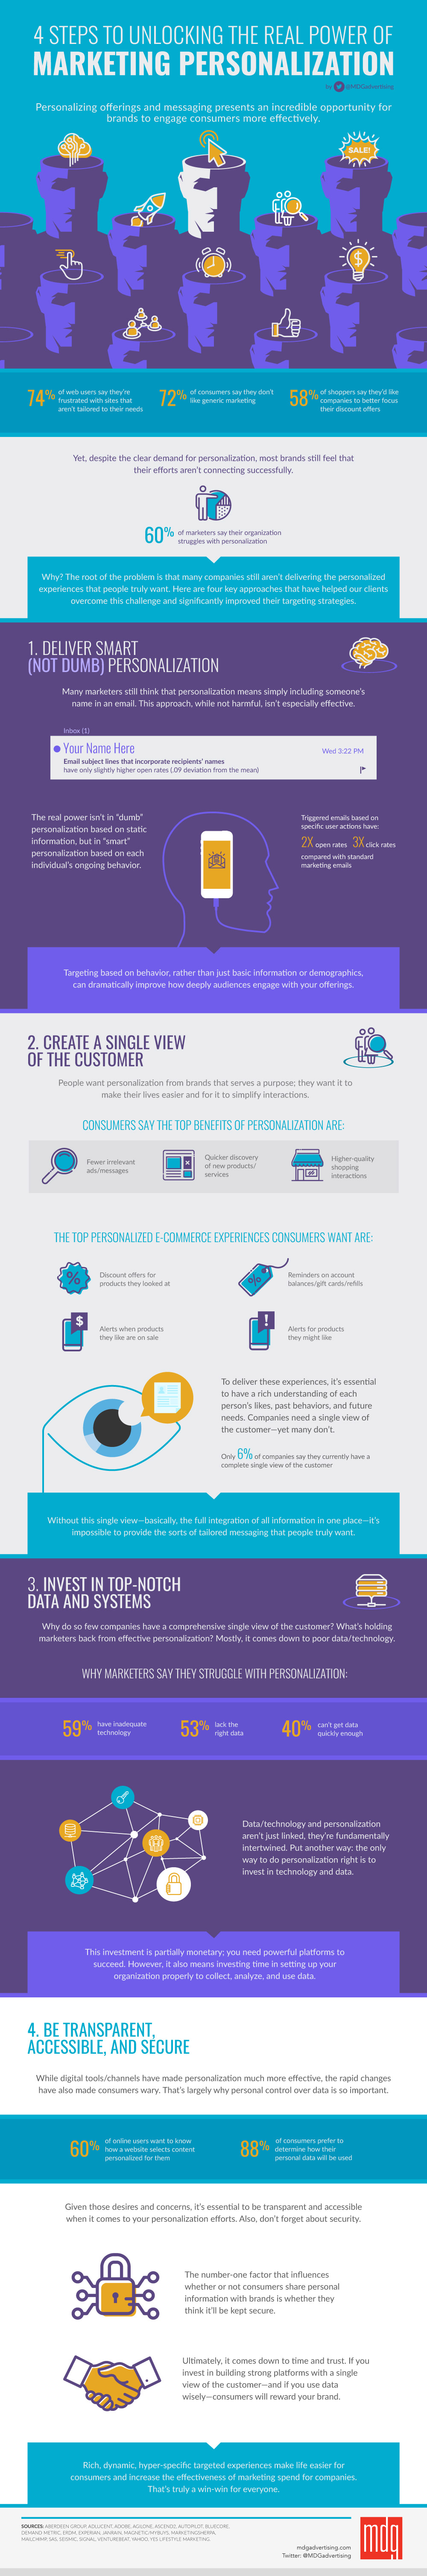 1953 1000x6037 4 Steps to Unlocking the Real Power of Marketing Personalization Infographic 2